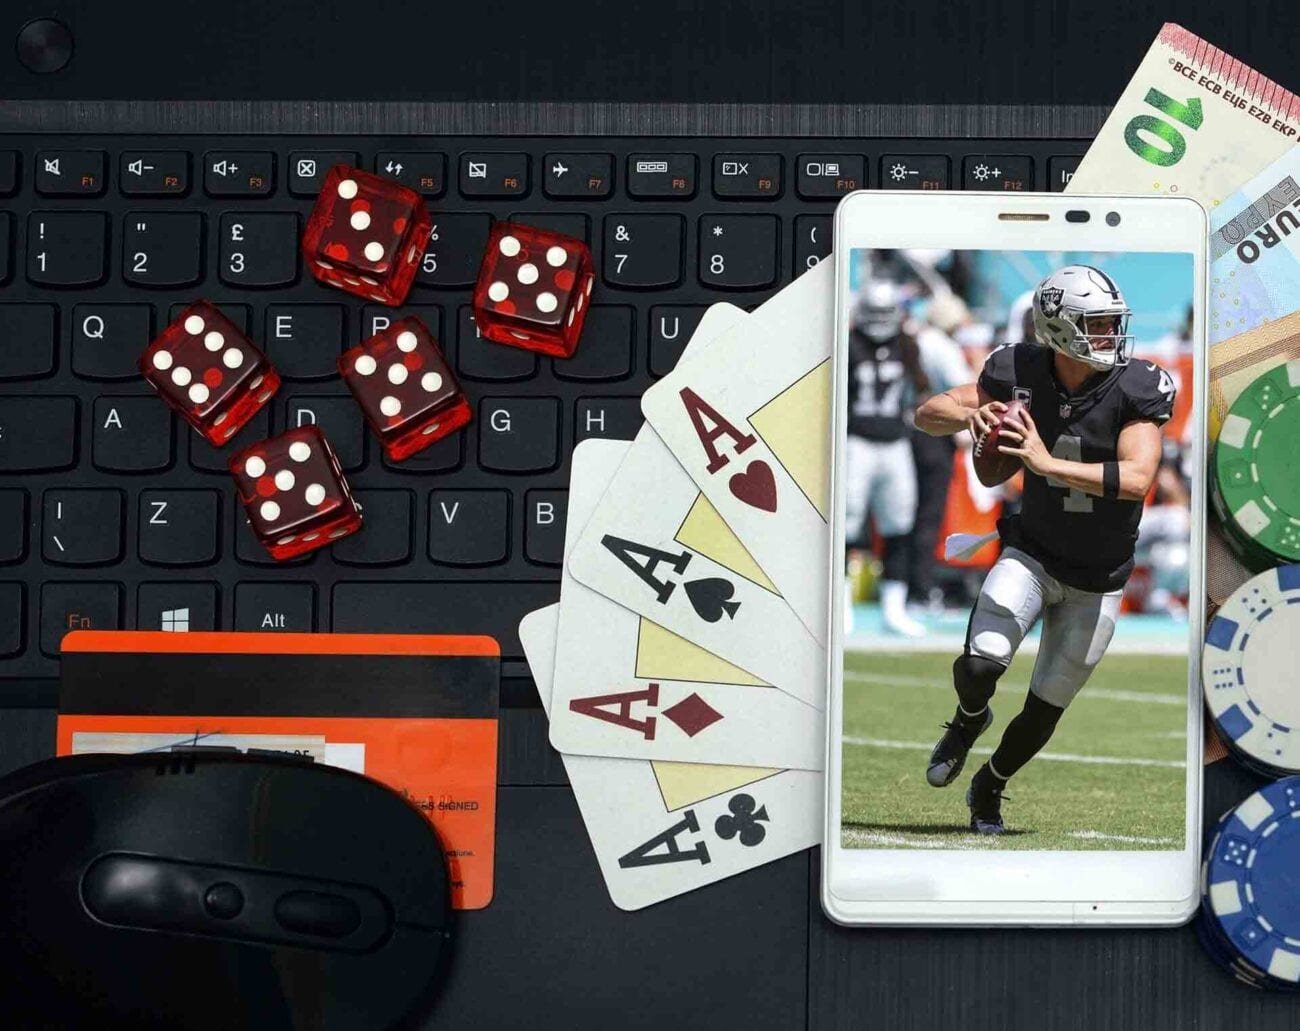 The world of iGaming is changing rapidly. From online sports betting to digital casinos, they're all becoming so much more interesting.